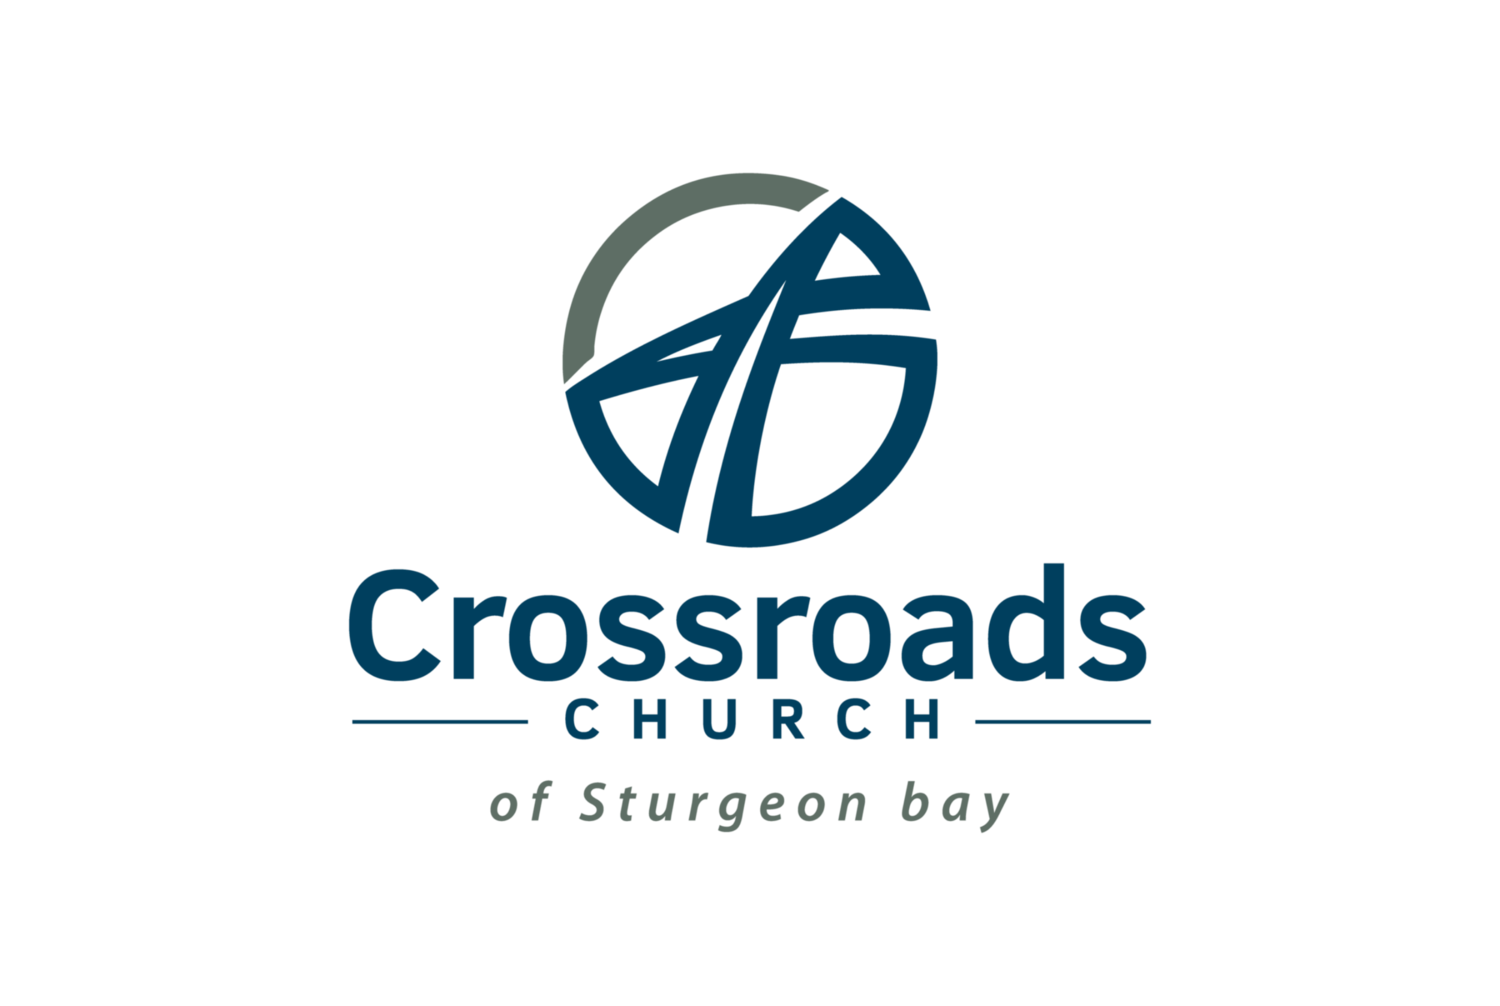 Crossroads Church of Sturgeon Bay